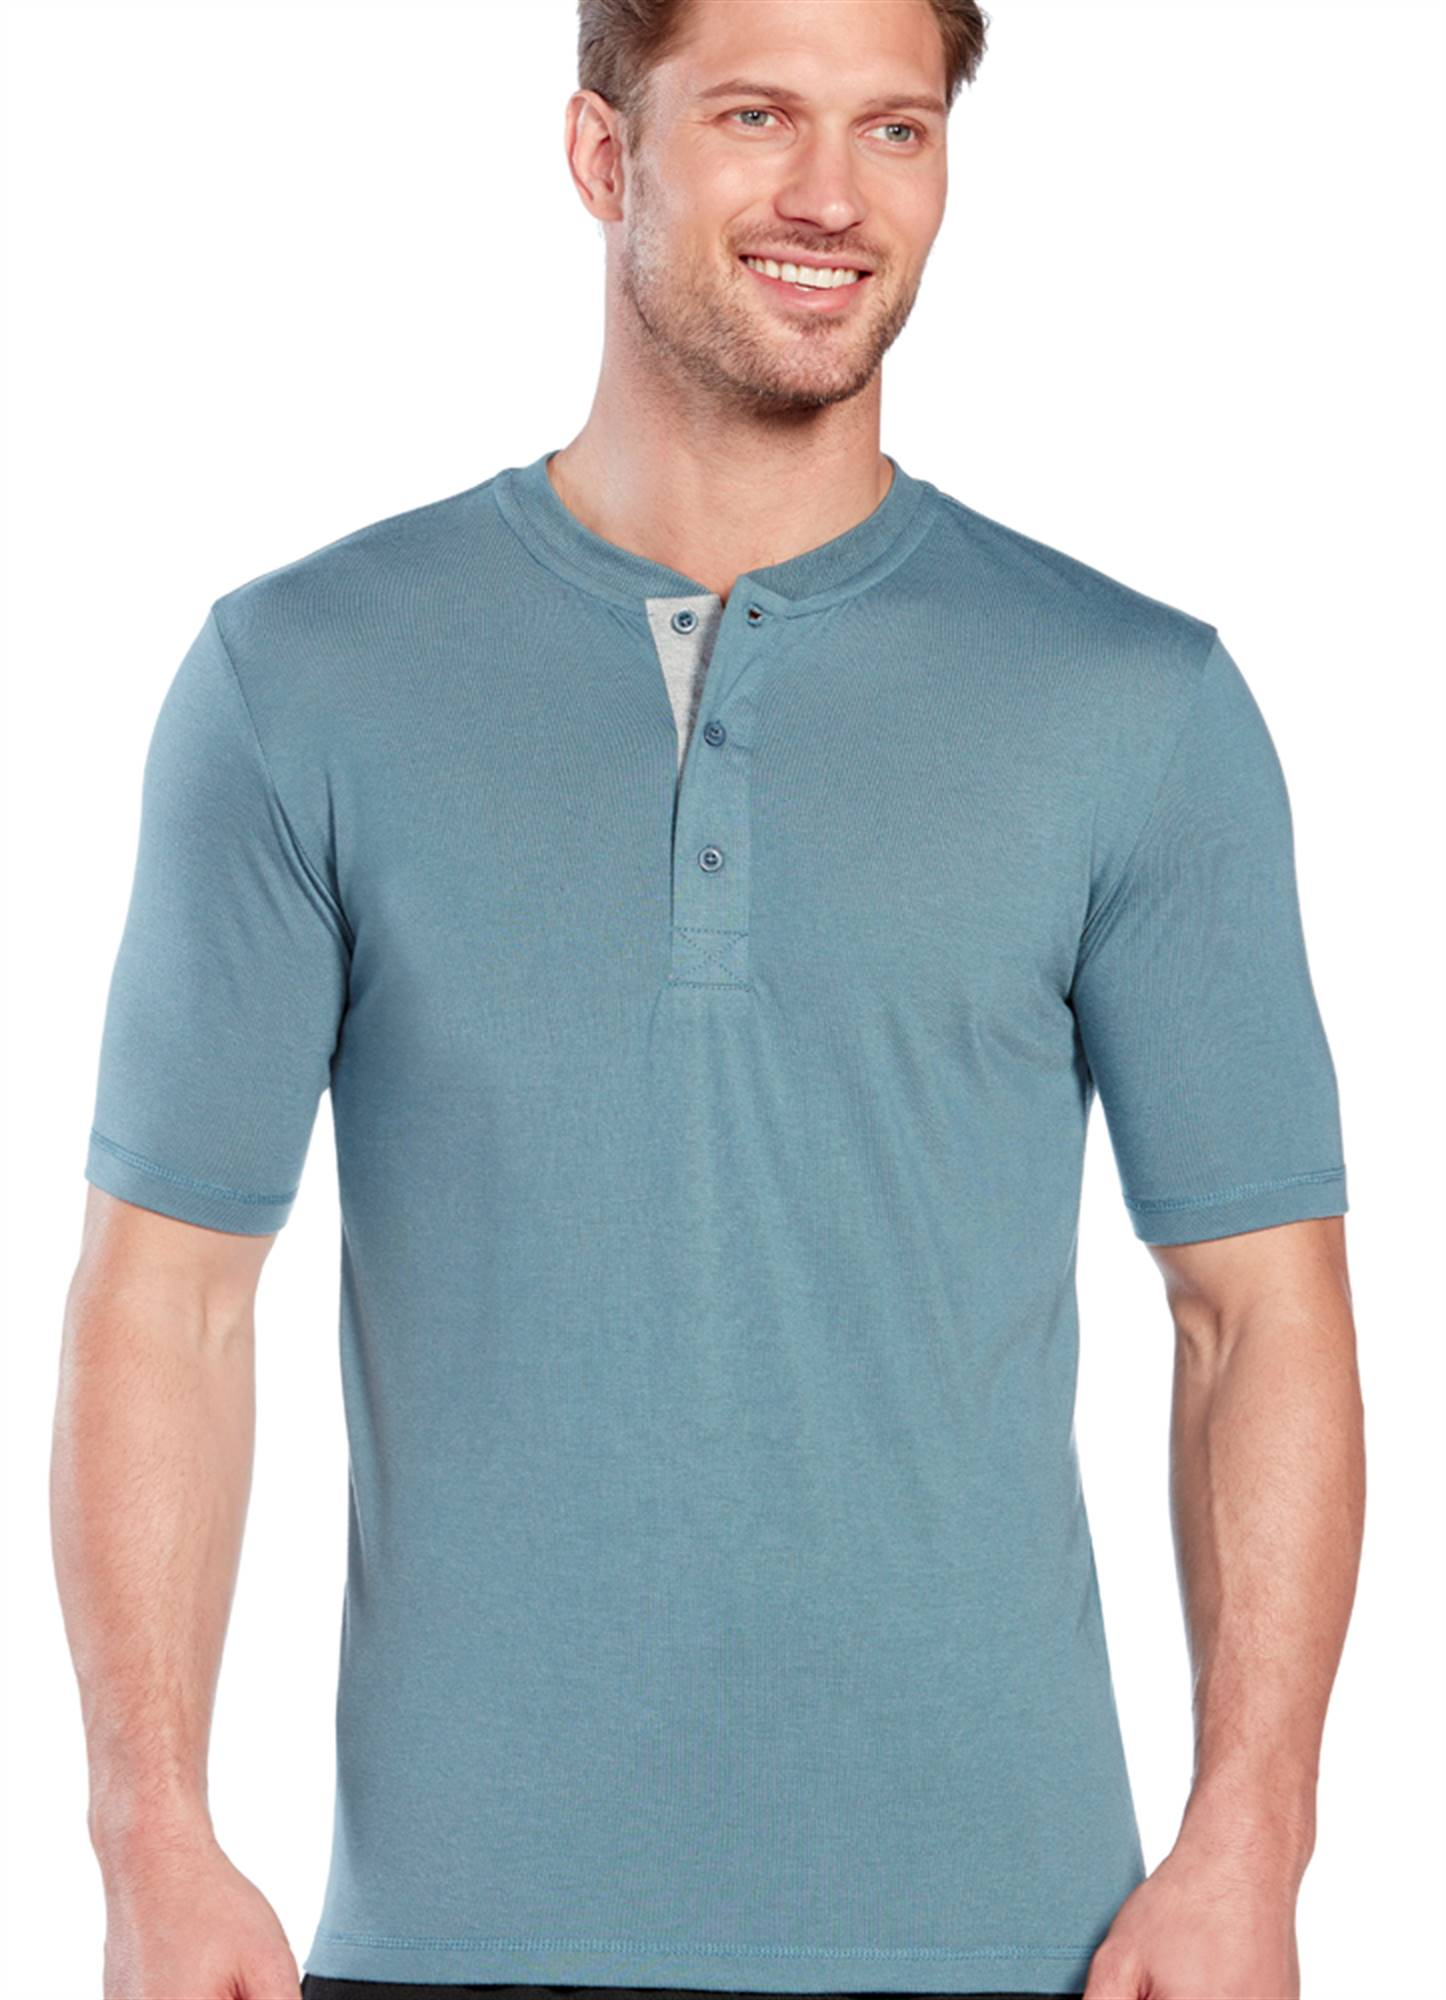 Jockey Mens Soft Knit Henley Tee Sleepwear Shirts